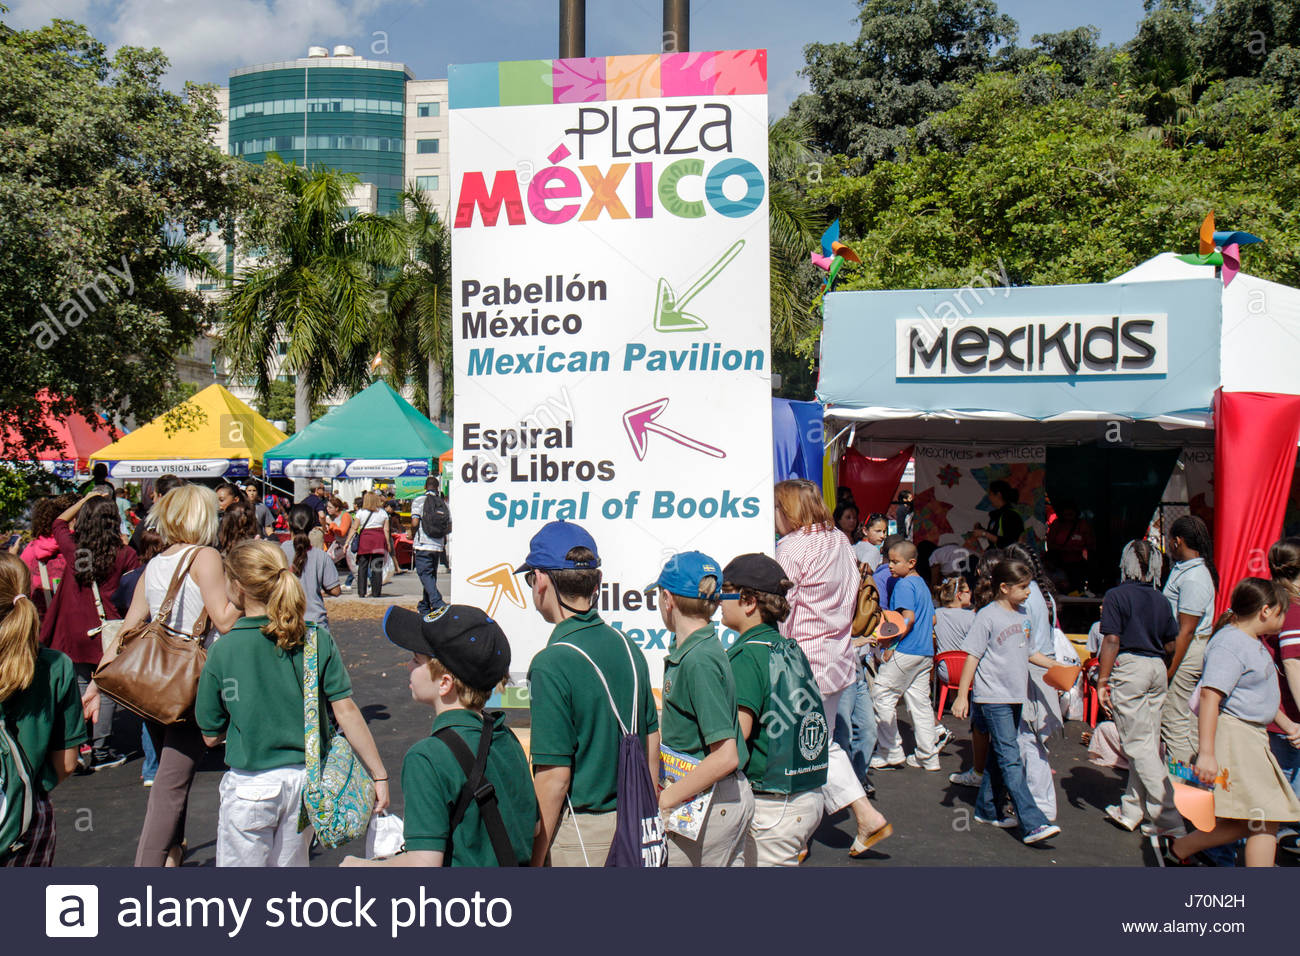 MiamiMiami Florida-Dade College Wolfson Campus Miami Book Fair International exhibitors booths sellers buyers shopping - Stock Image